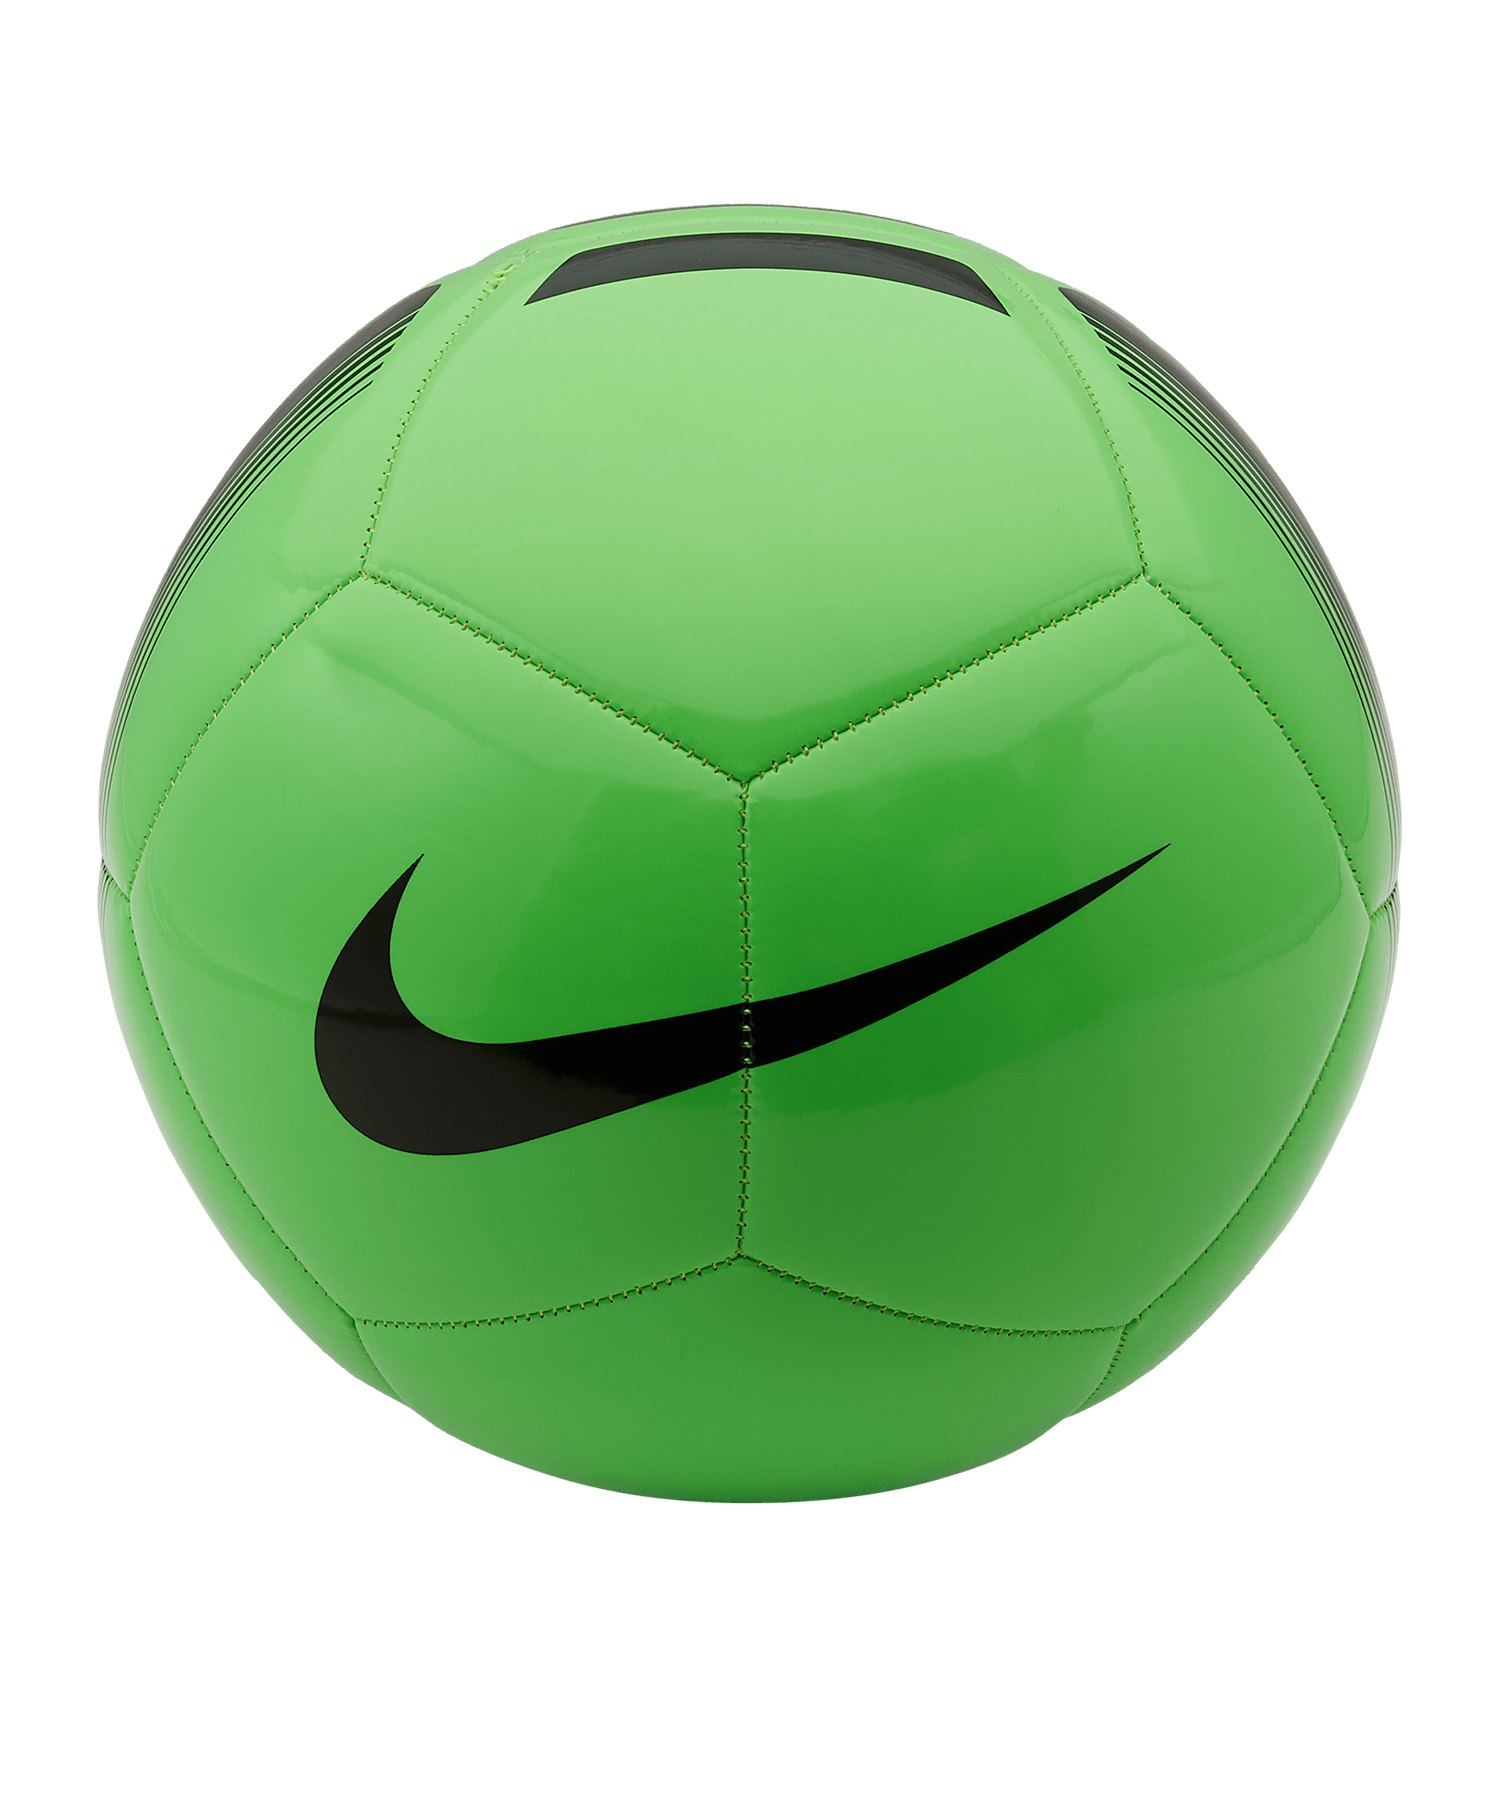 Nike Pitch Team Trainingsball Grün F398 - gruen